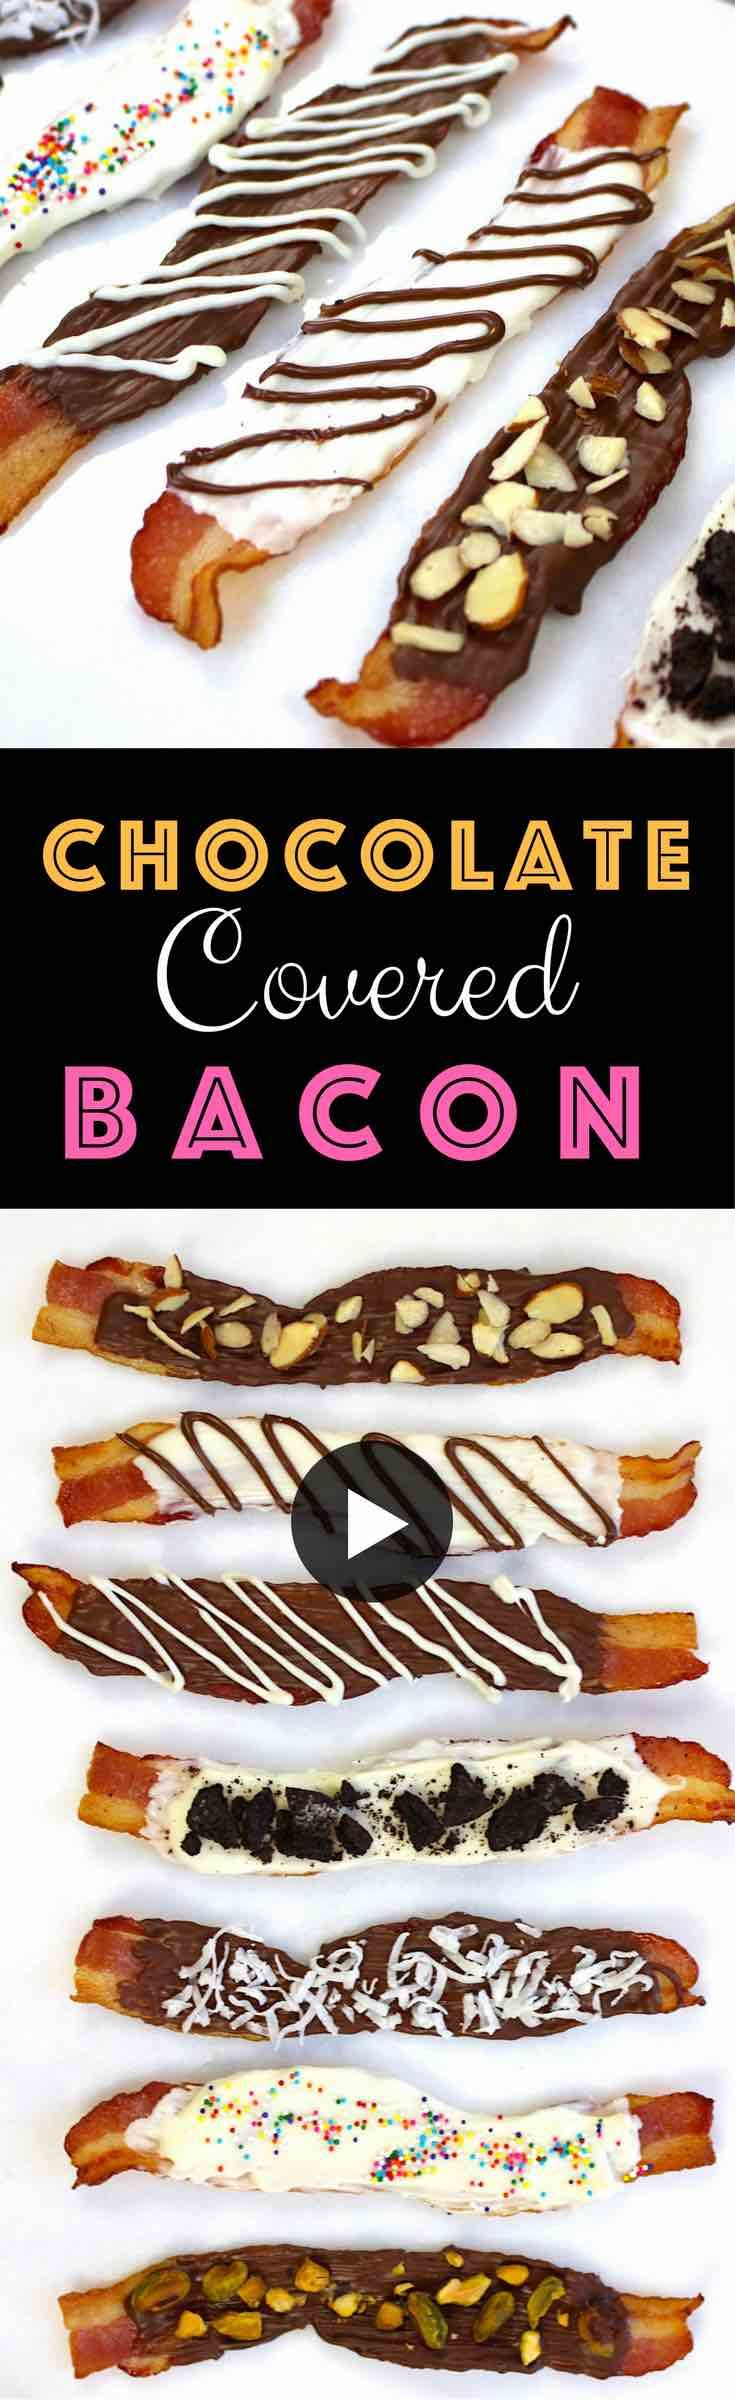 This Chocolate Covered Bacon is to-die for! Two of the world's best ingredients come together to create a sweet and salty, amazingly delicious snack! This quick and easy Chocolate Covered Bacon is a crowd pleaser and will definitely wow your friends at your next party! Video recipe. | Tipbuzz.com